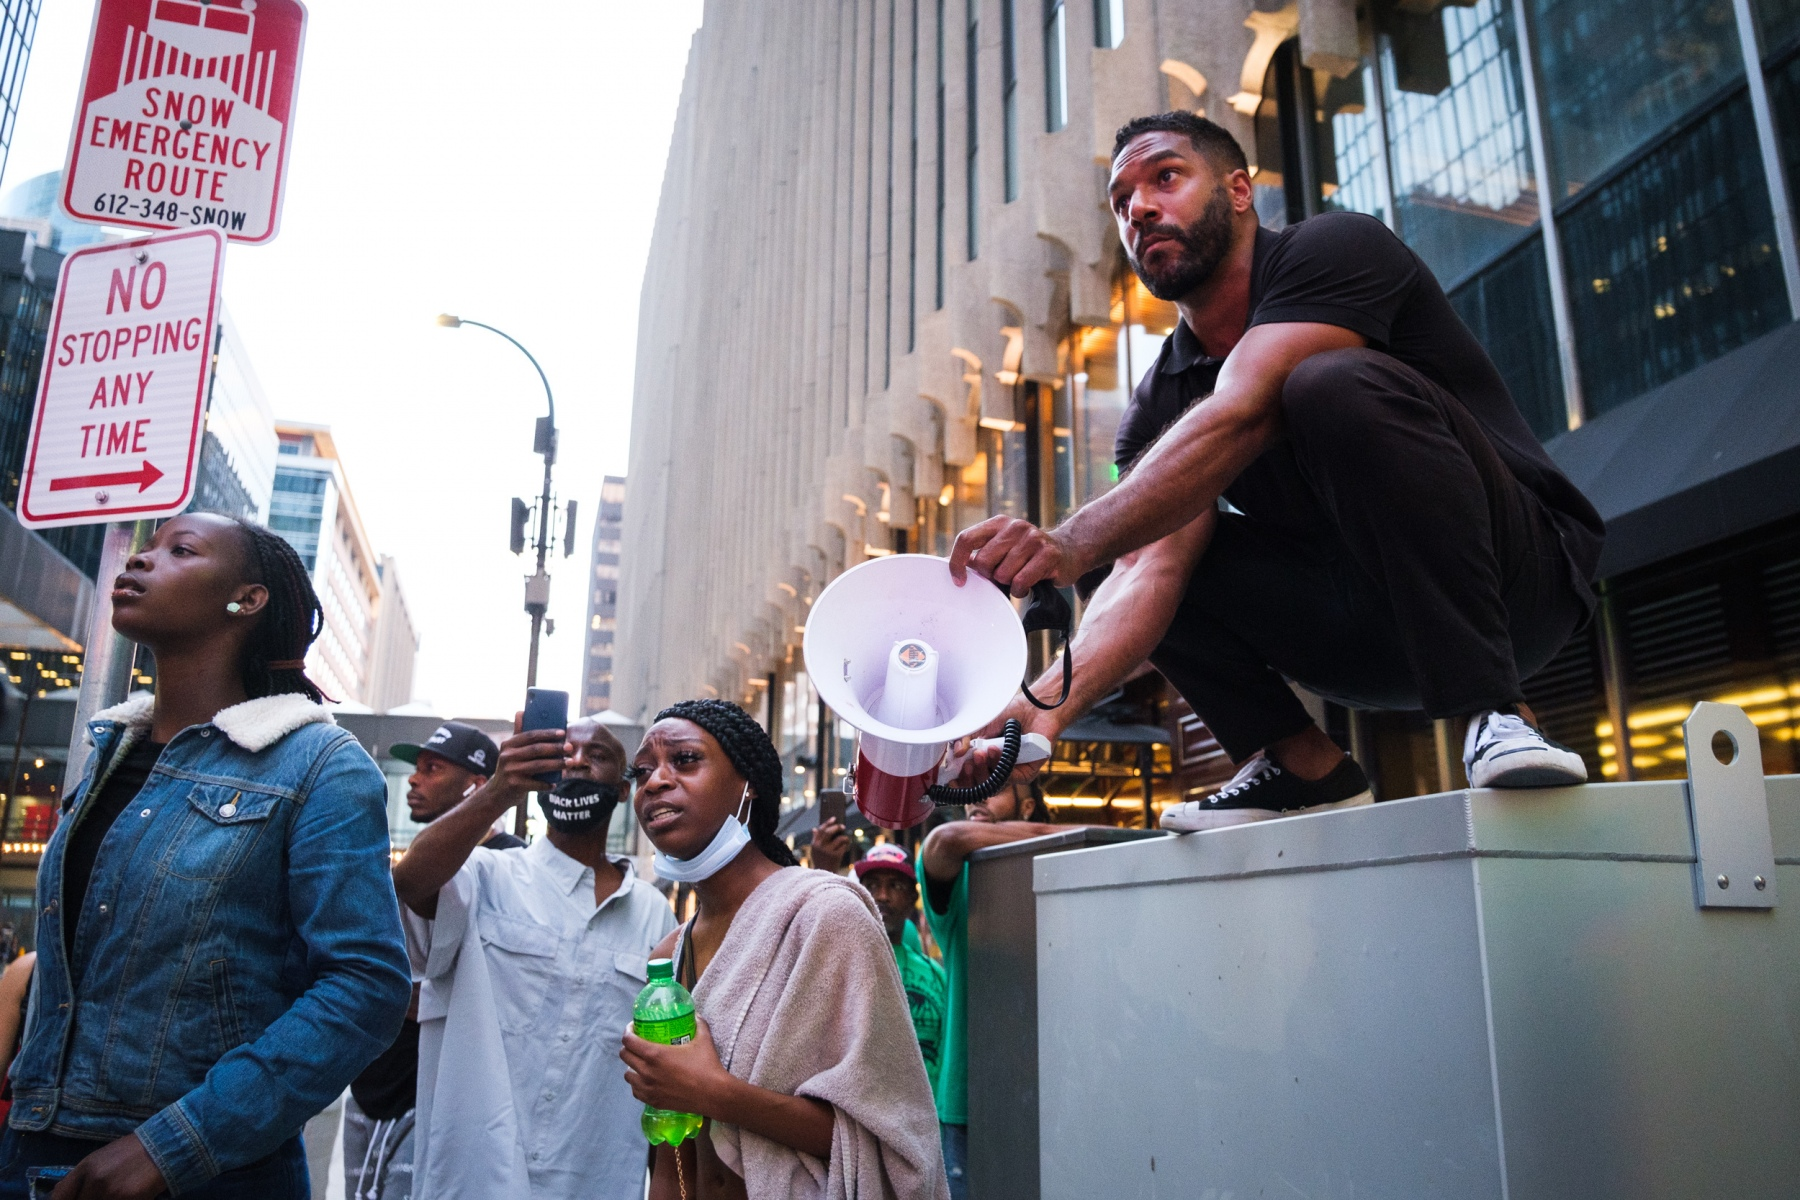 Black Lives Matter organizer Toussaint Morrison holds a megaphone for eyewitnesses to share their accounts of the shooting as tensions rise between bystanders and police on August 26, 2020.